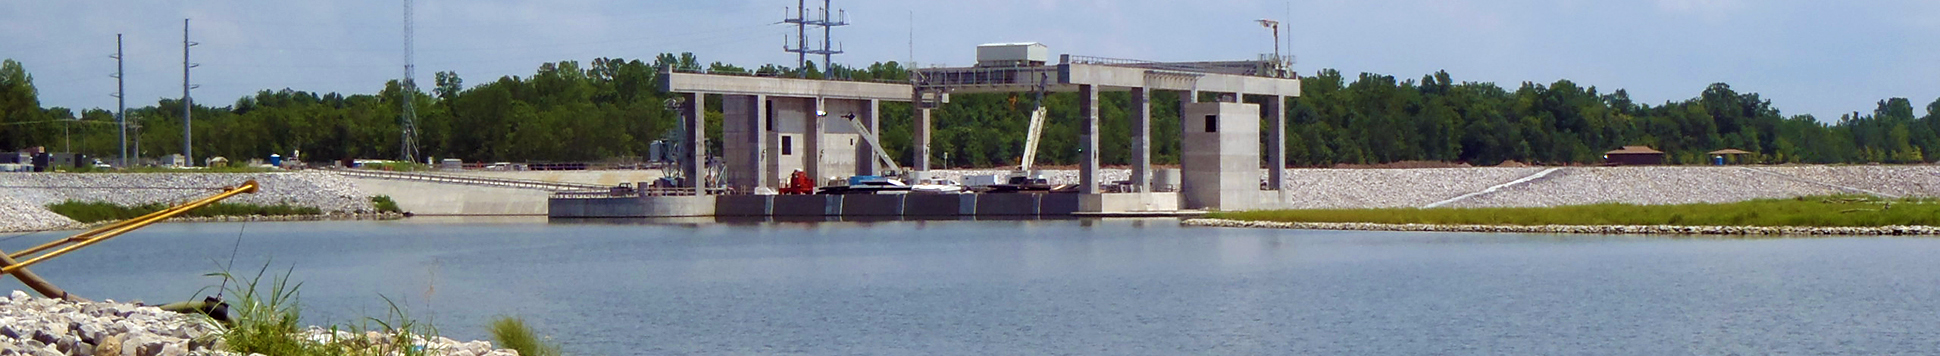 Smithland Hydroelectric Project